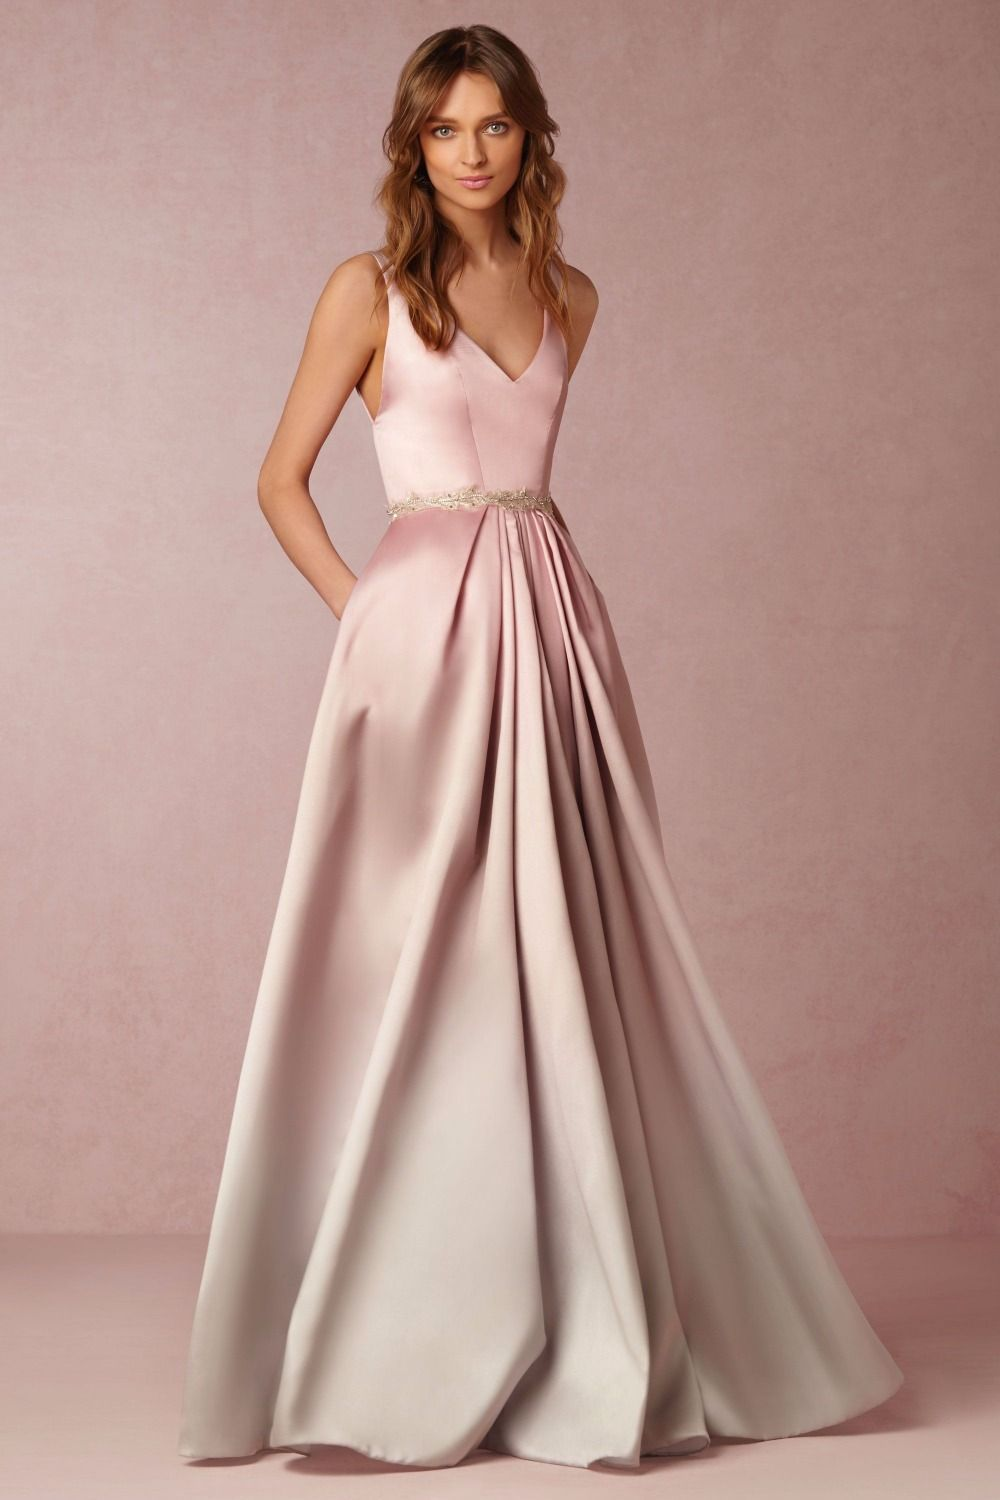 Jcpenney wedding dresses plus size  Cheap gown meaning Buy Quality dress jcpenney directly from China